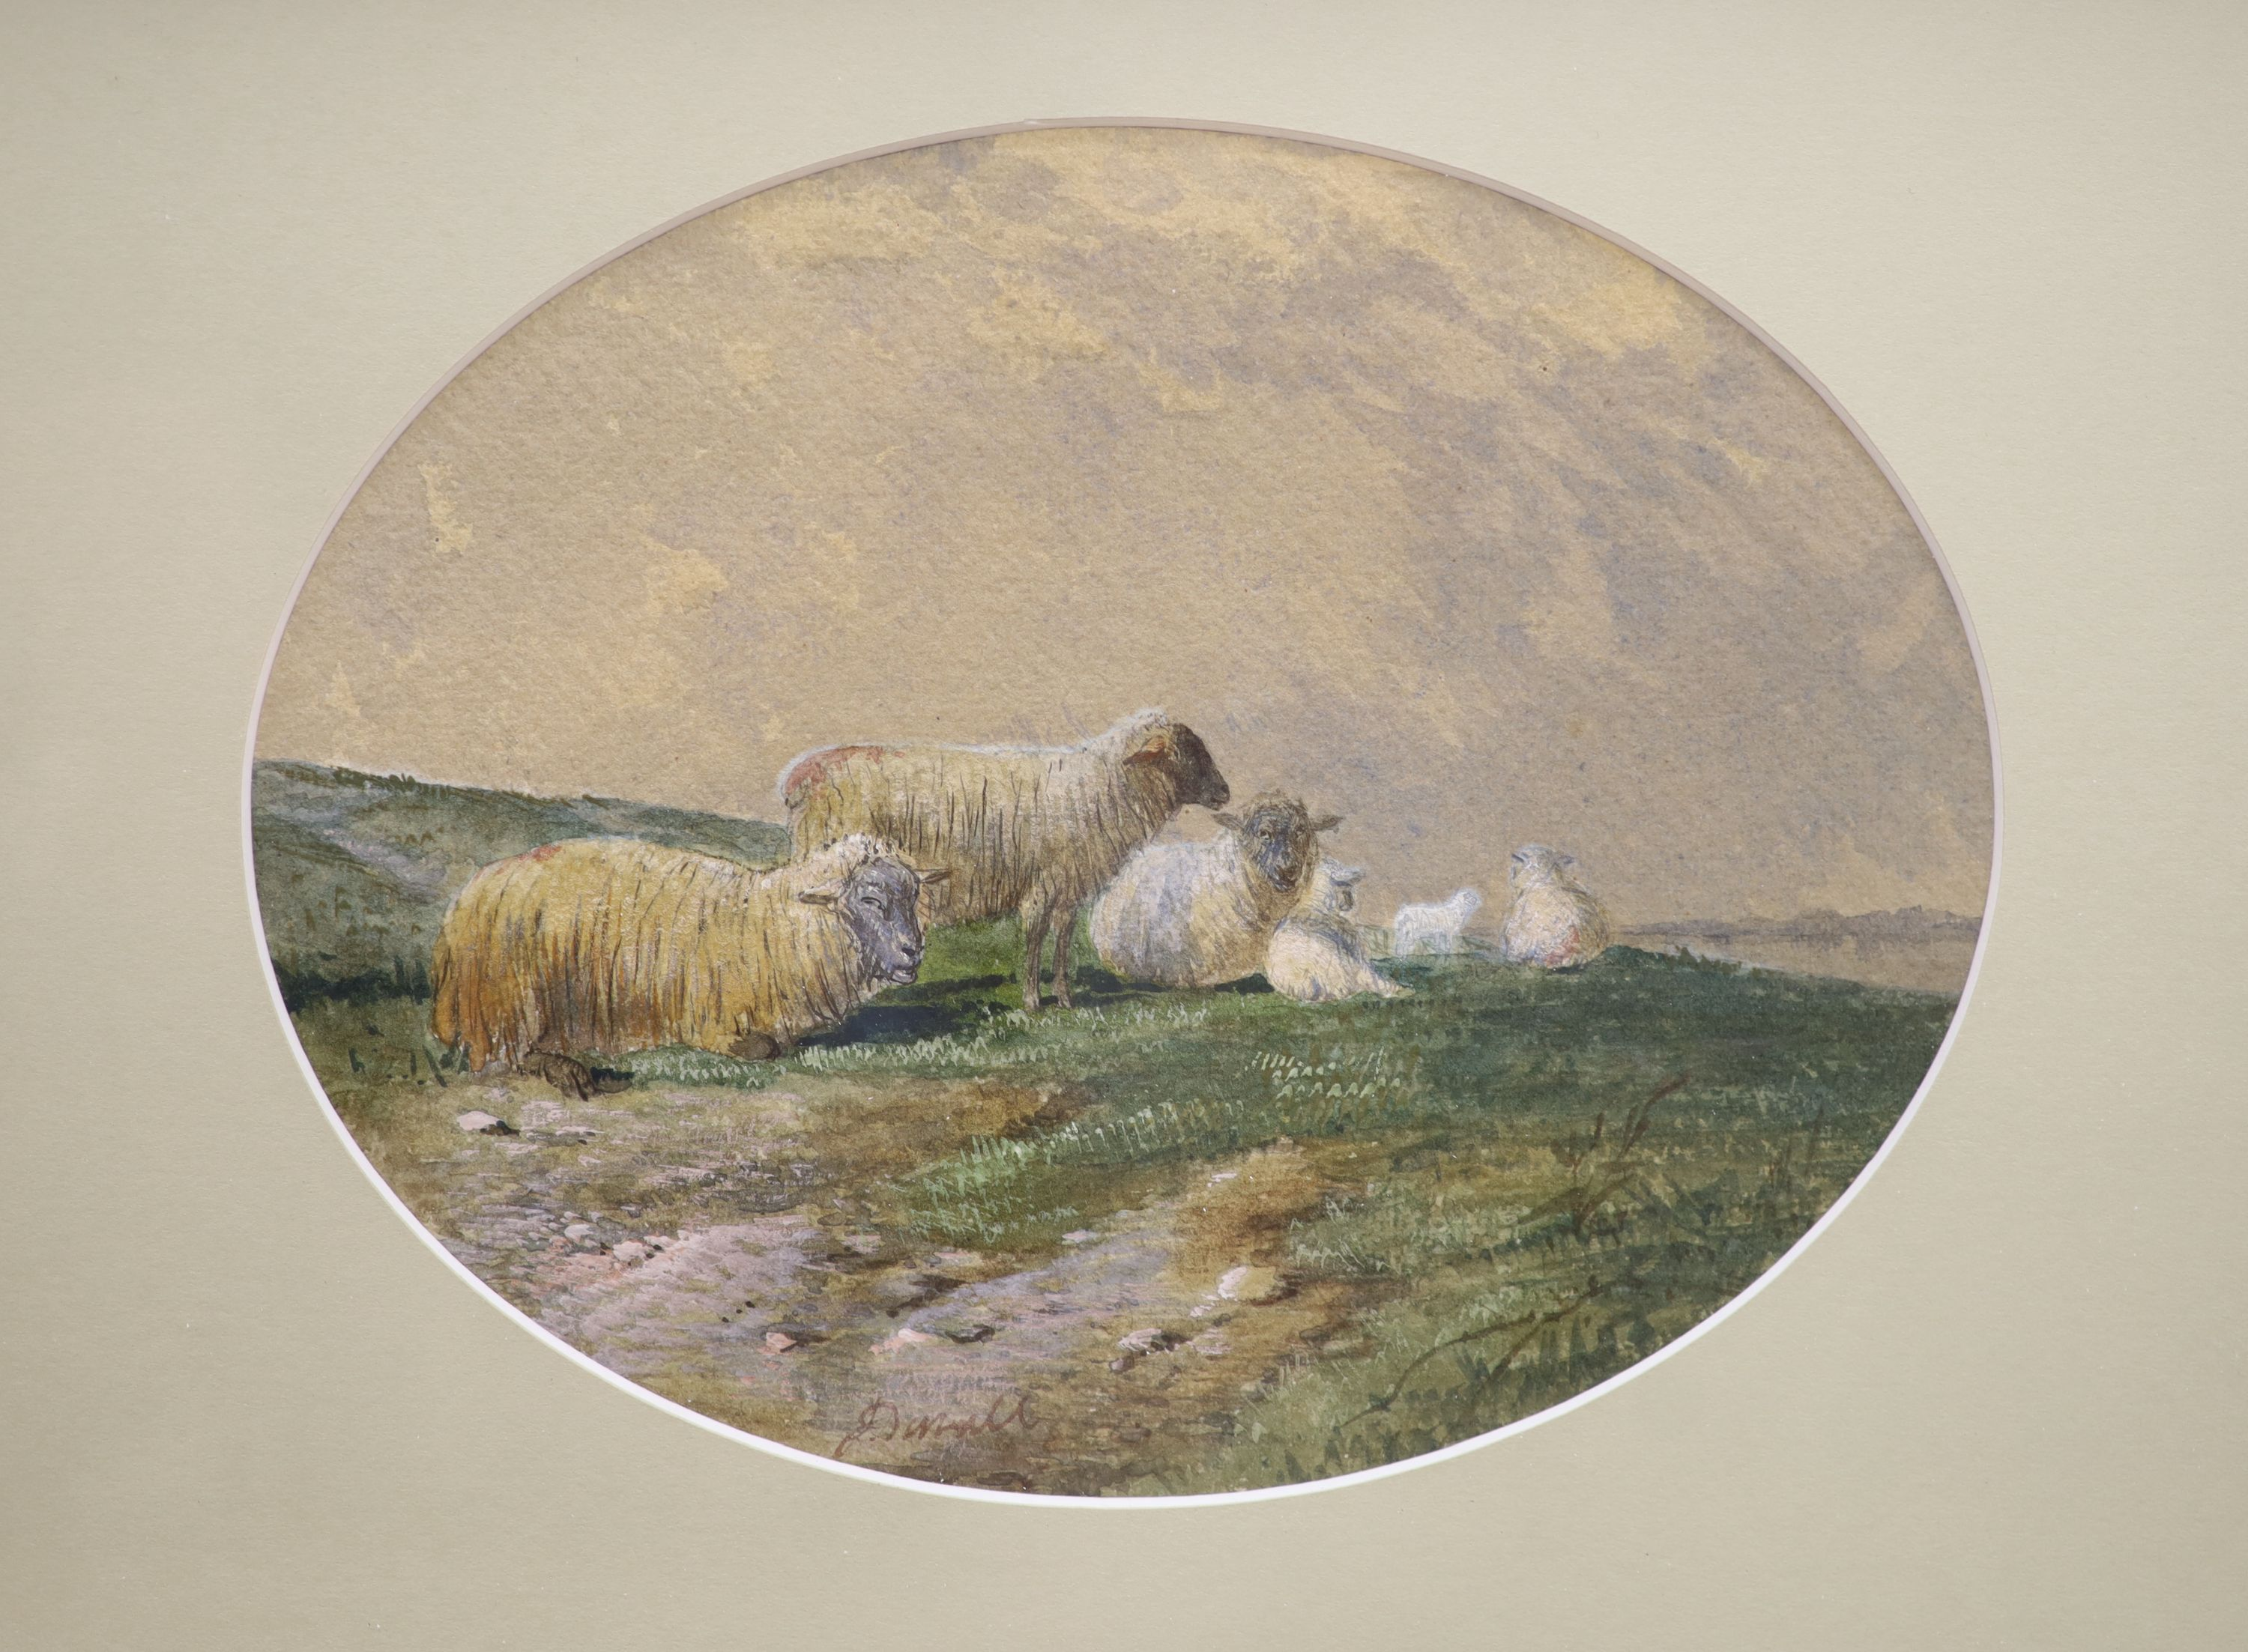 J.D. (19thC), pair of watercolours, Studies of sheep, indistinctly signed, 19 x 24cm - Image 3 of 3